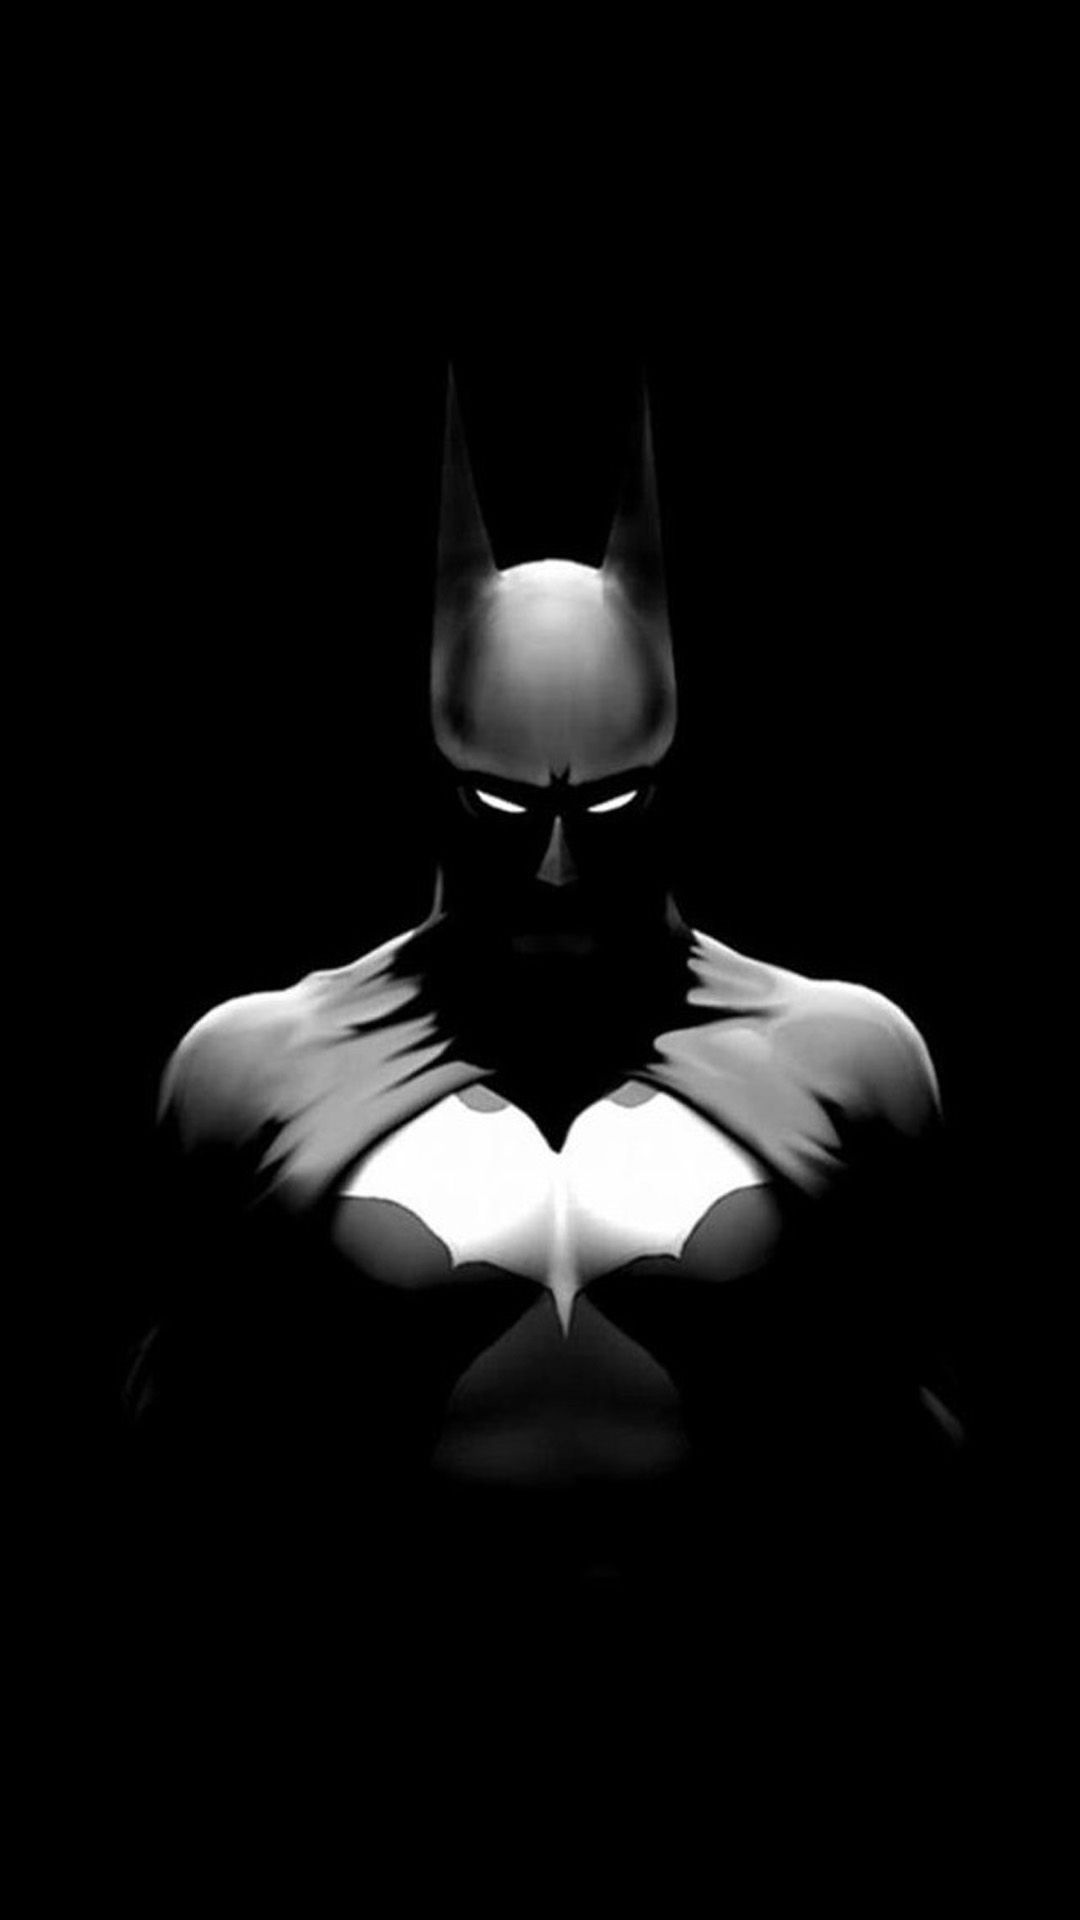 Black Batman Wallpaper : black, batman, wallpaper, Batman, Background, IPhone, Wallpaper, Download, Wallpapers,, Wallpapers, One-stop, Backgrounds,, Comic, Wallpaper,